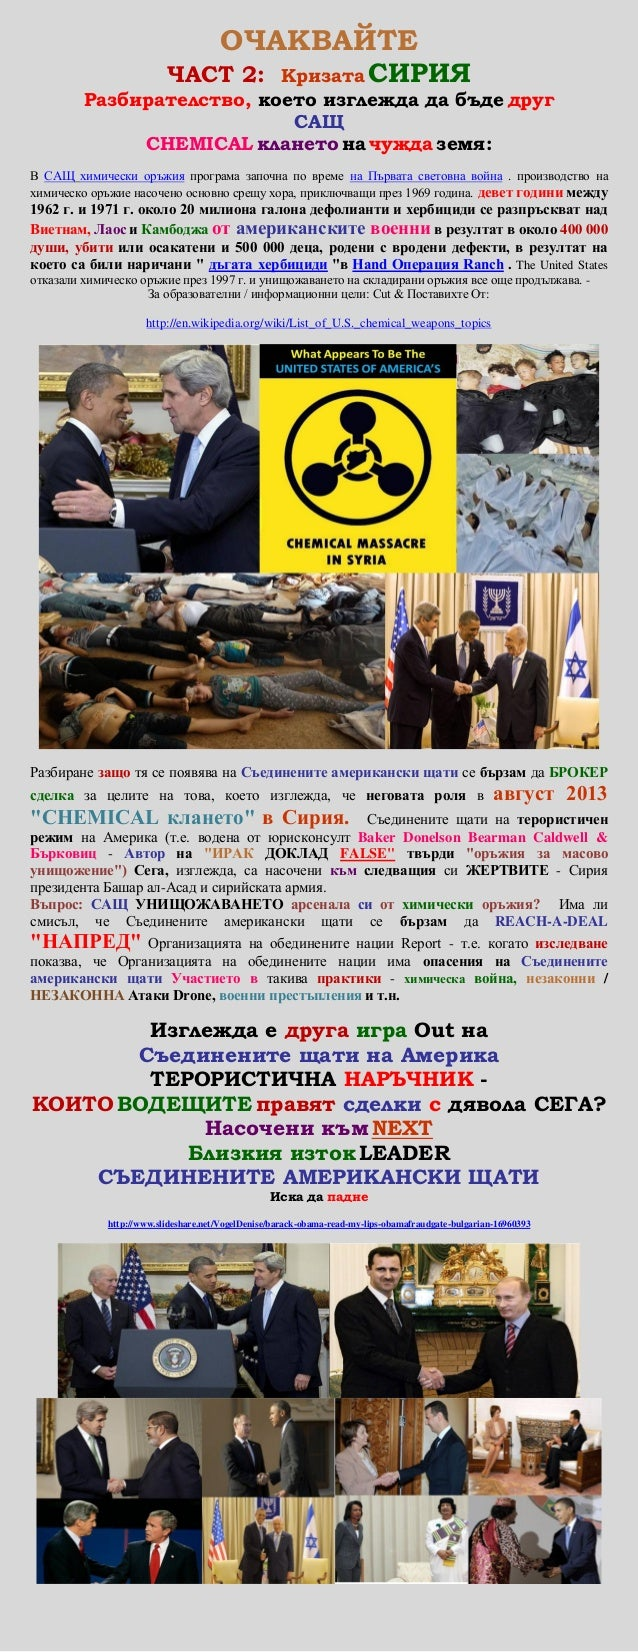 Syria crisis   (united states of america) chemical weapons attack (bulgarian)